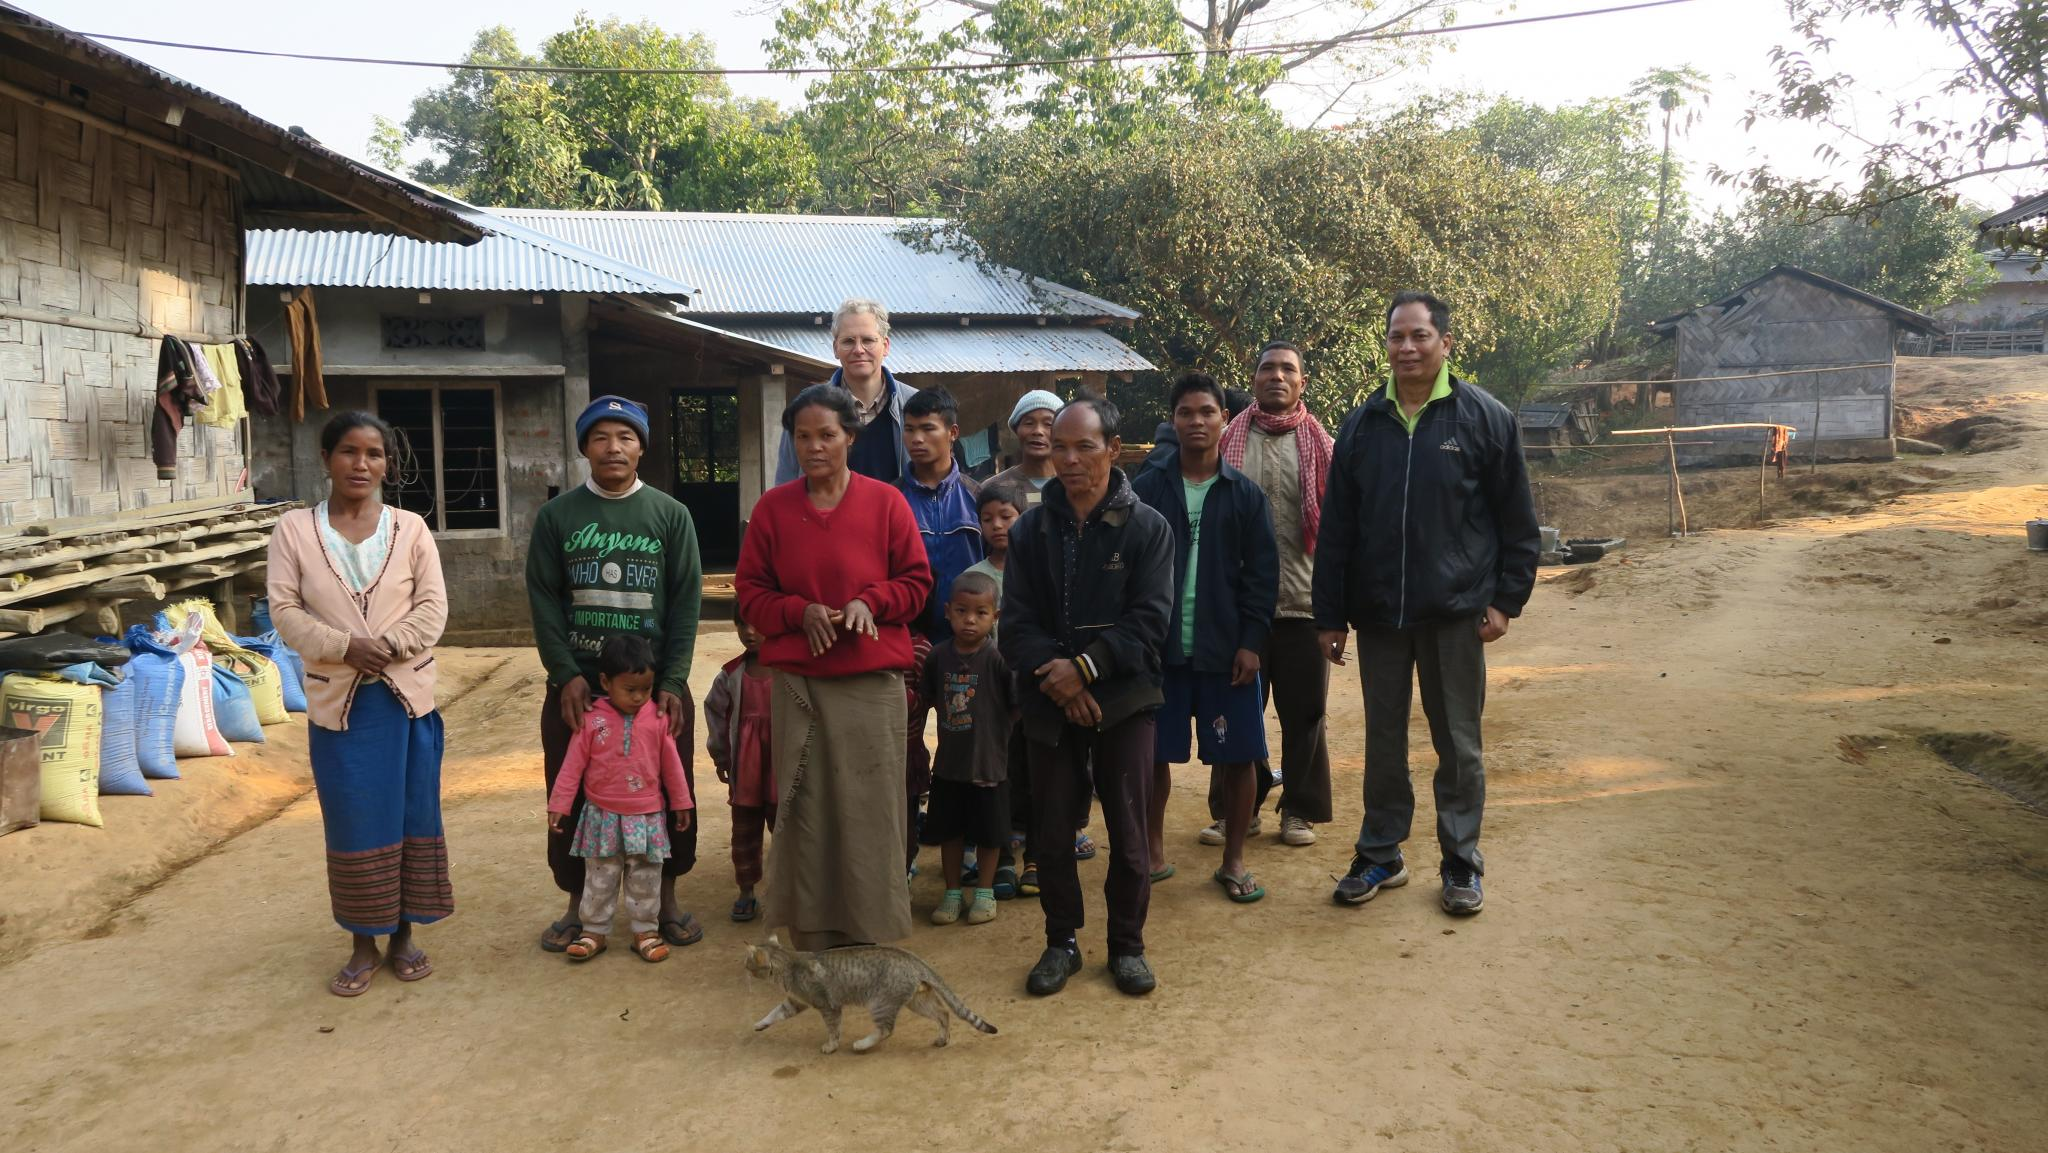 Residents of Rongkinggre village, Daniel Ingty (right, Meghalaya Basin Development Authority) and Erik de Maaker (rear). Rongkinggre can become part of the proposed Garo Hills Conservation Area